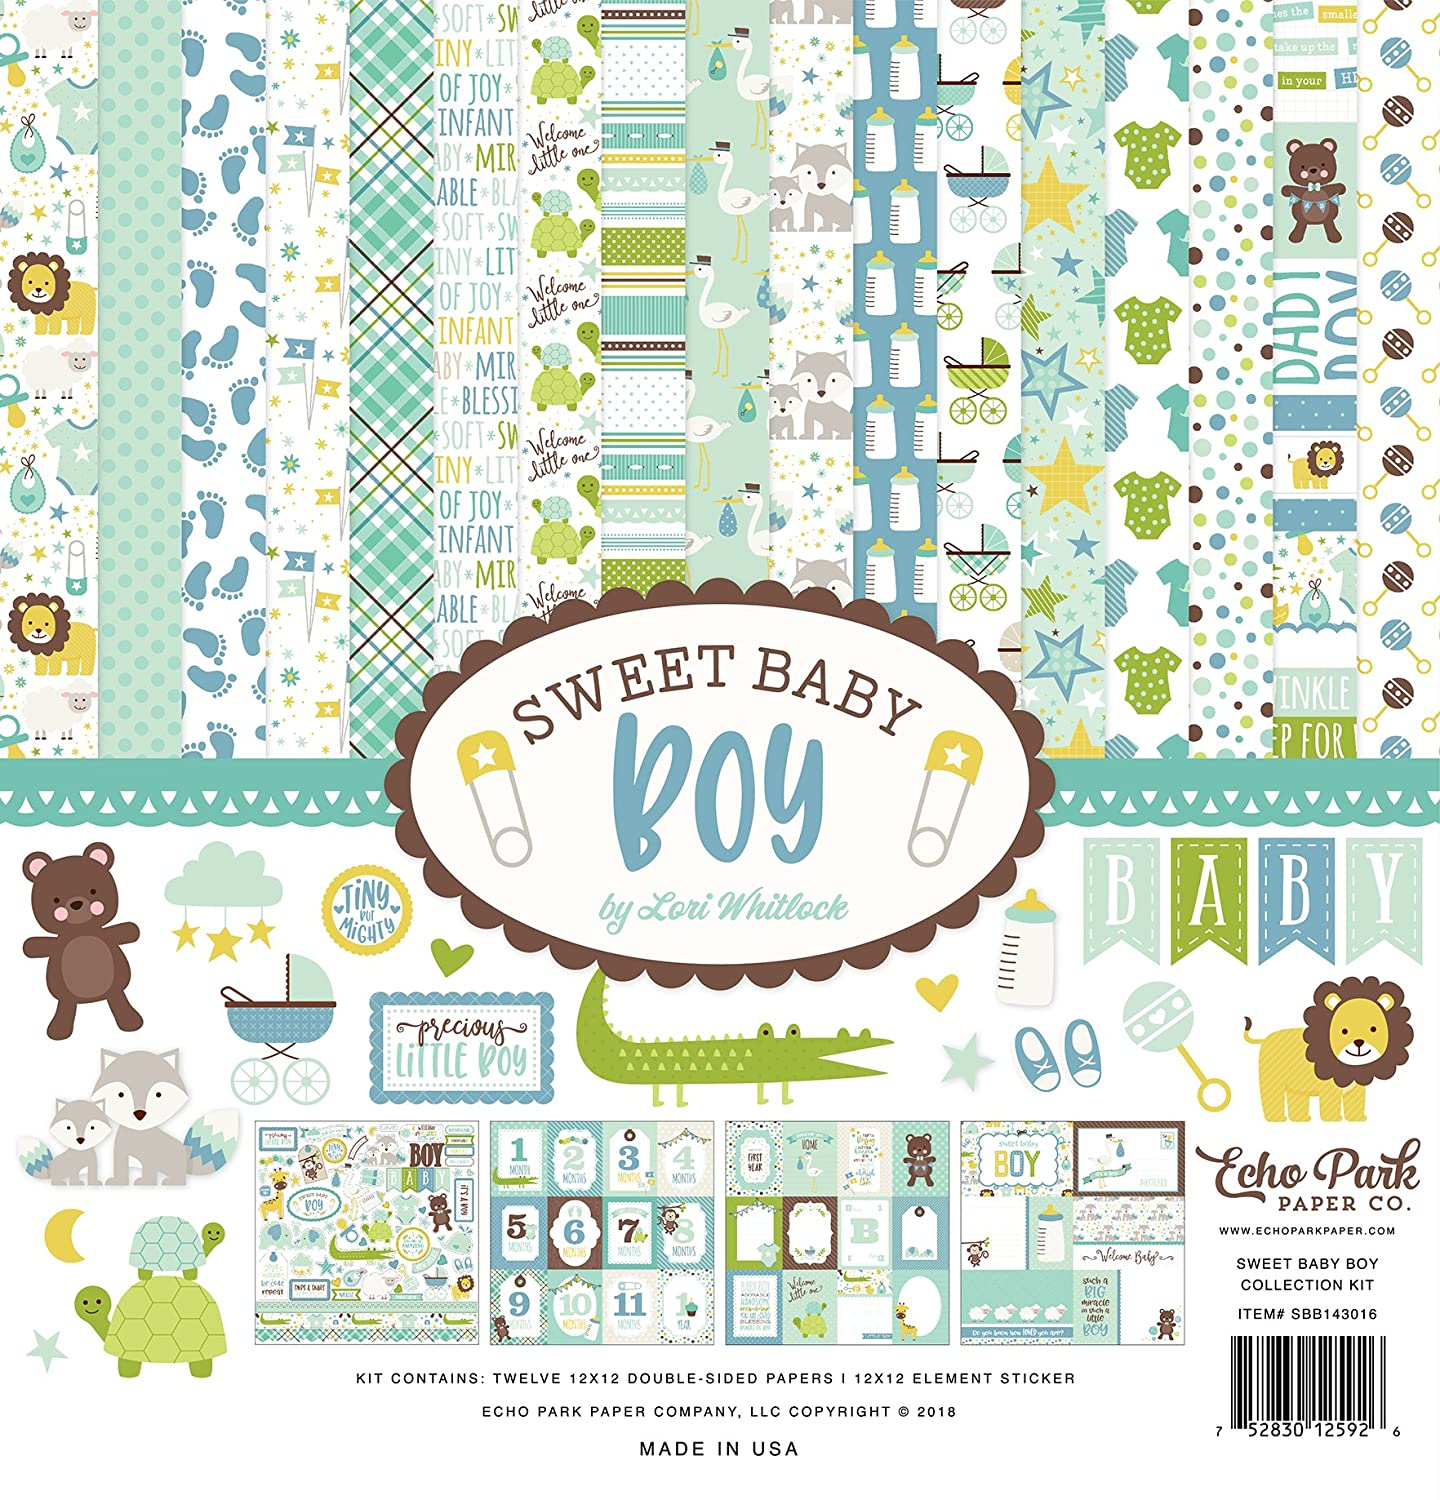 Echo Park Paper Company Sweet Baby Boy Collection Kit SBB143016